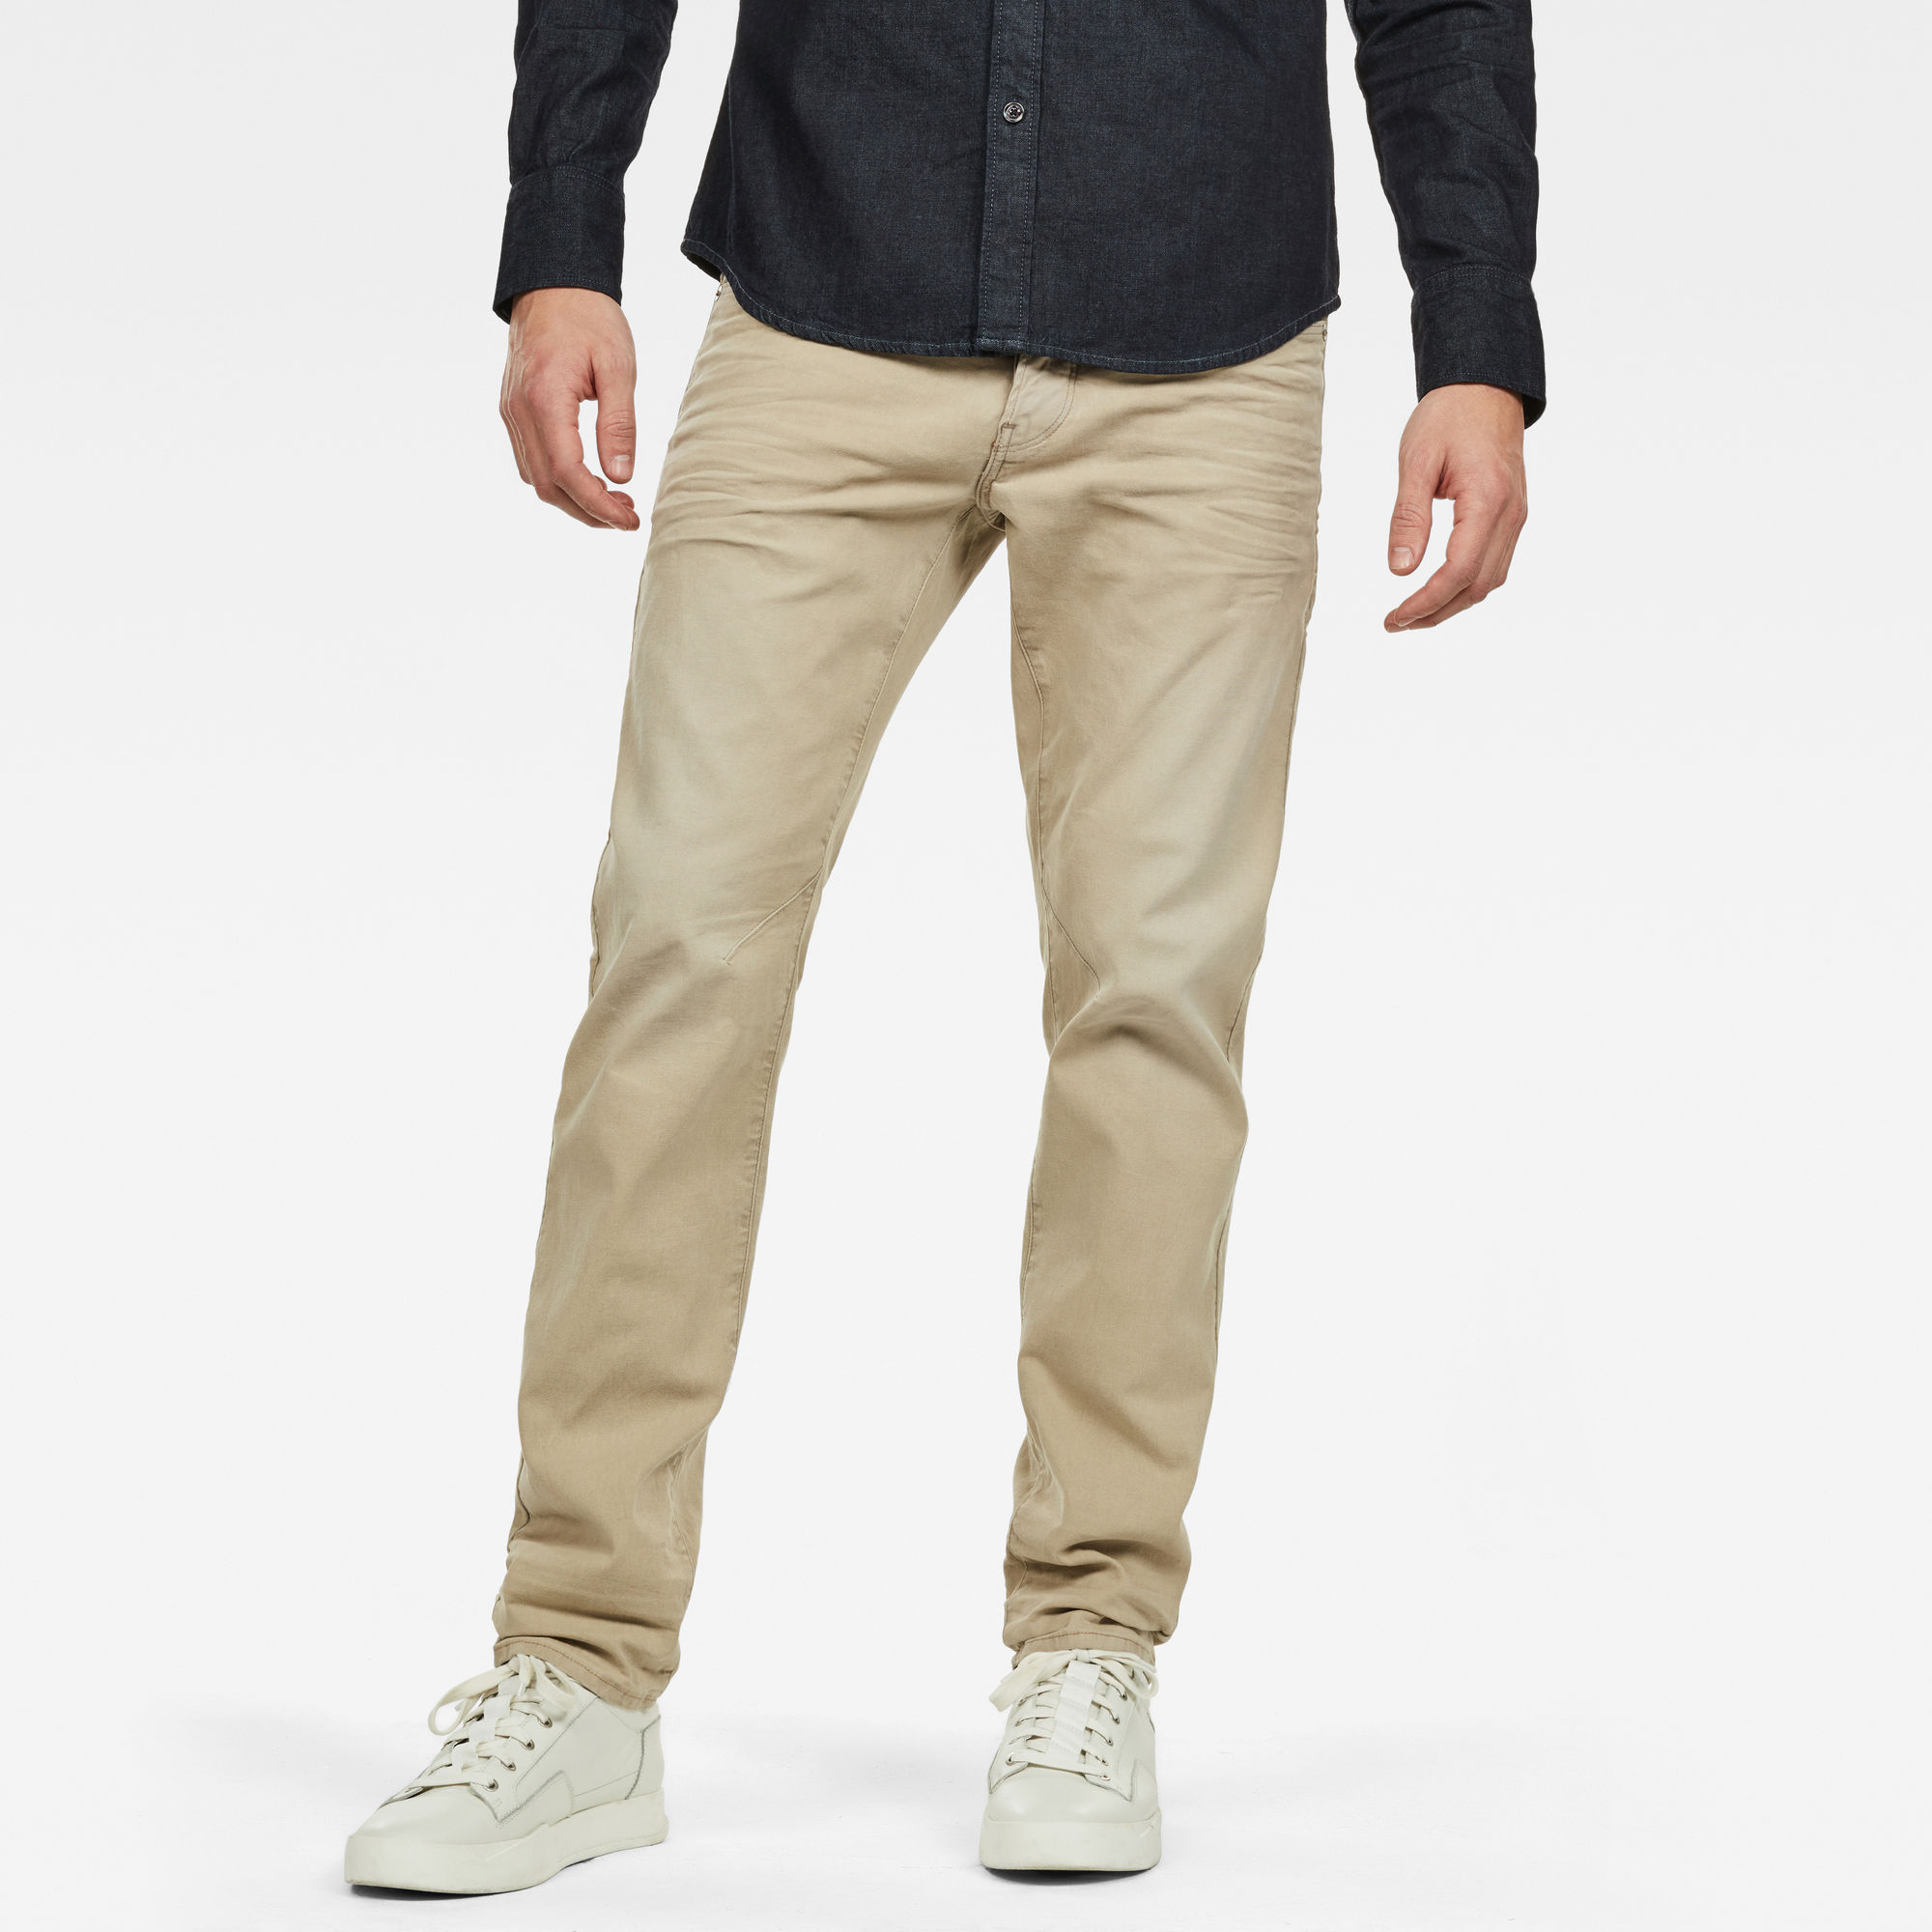 Image of G Star Raw D-Staq 5-Pocket Straight Colored Jeans